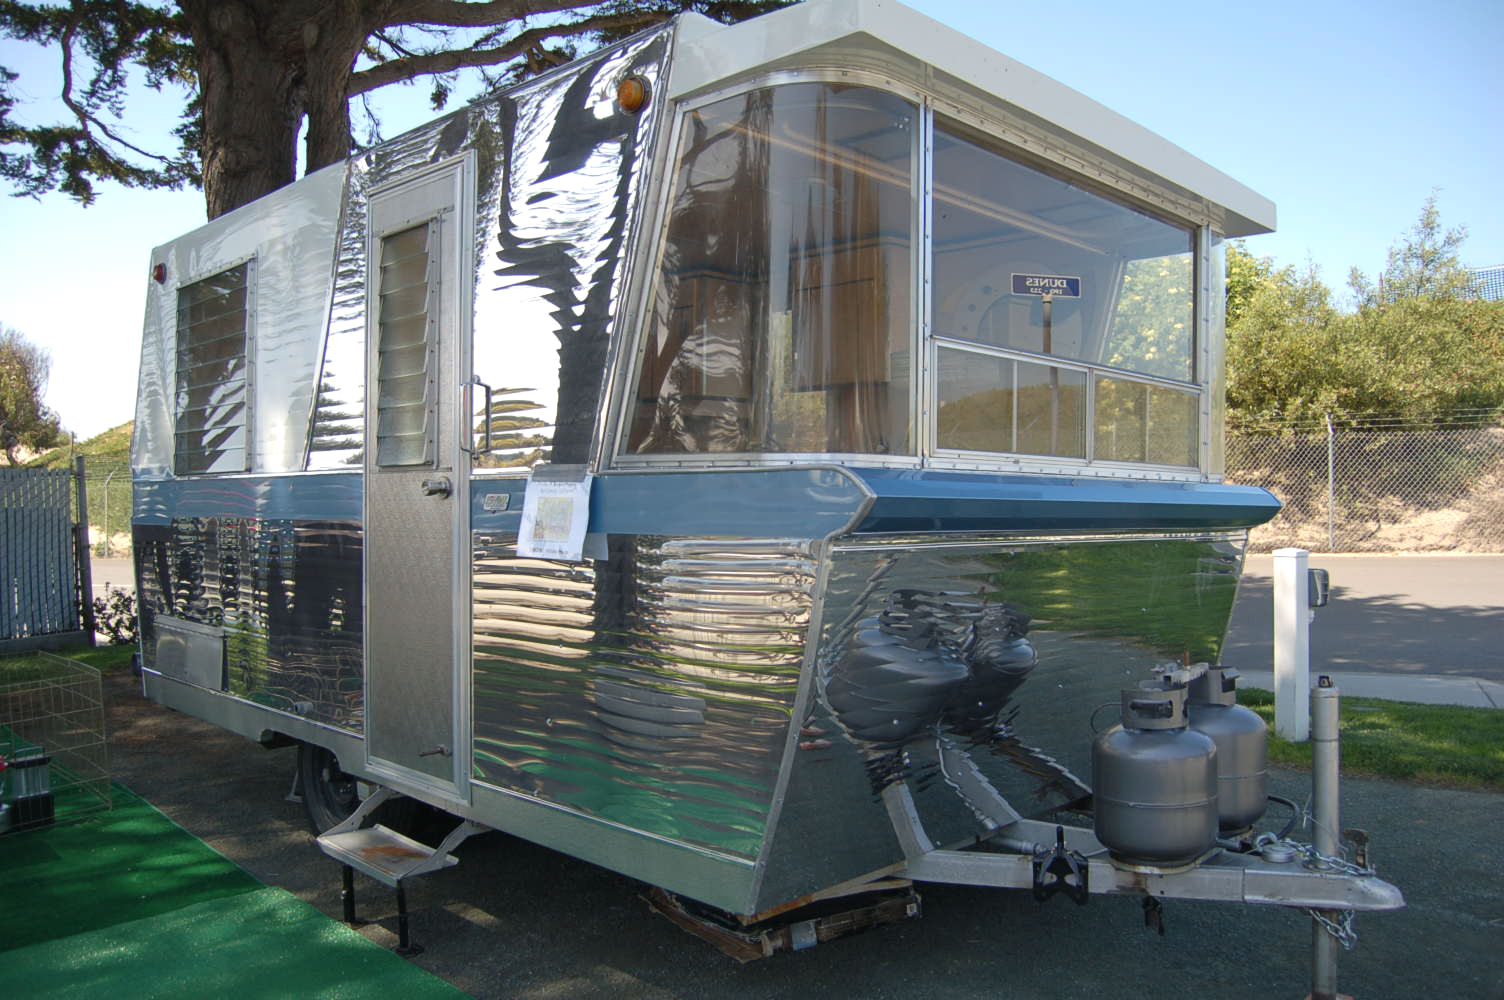 Vintage Camper Trailers For Sale If You Are Looking To Buy A Trailer RV Or Tow Vehicle Have Found The Right Place